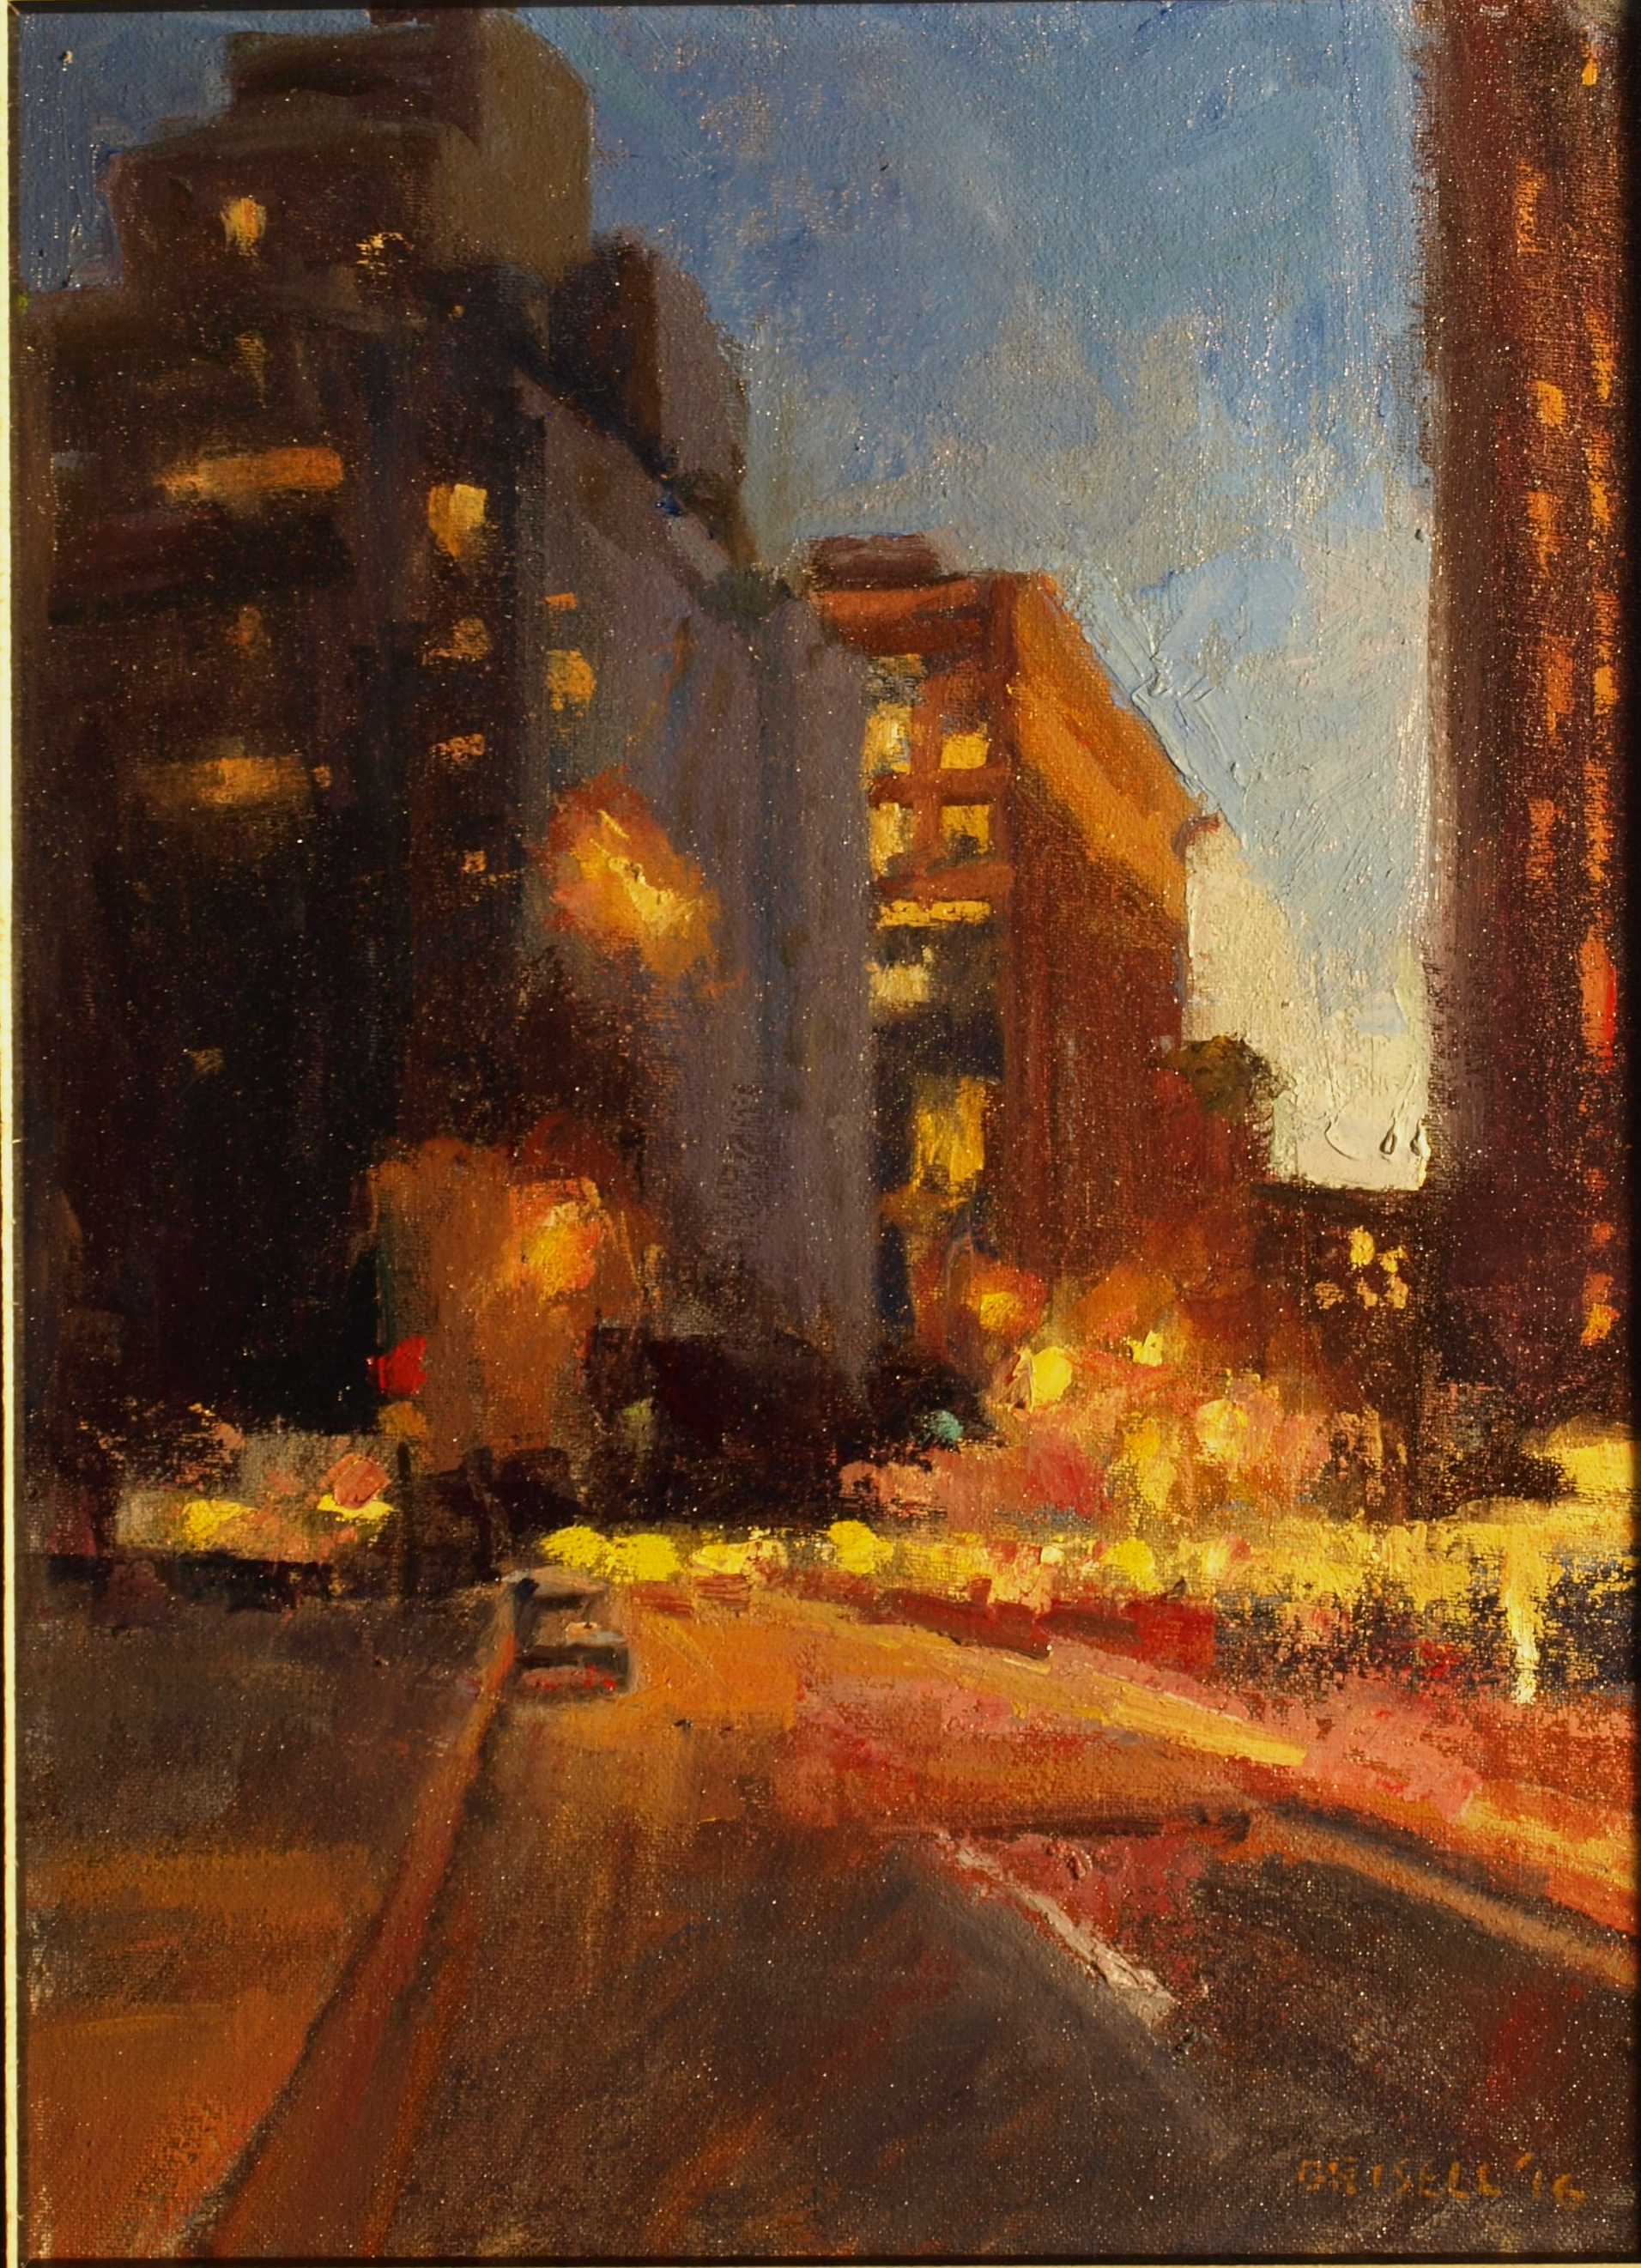 Lower Broadway, Oil on Canvas on Panel, 16 x 12 Inches, by Susan Grisell, $300